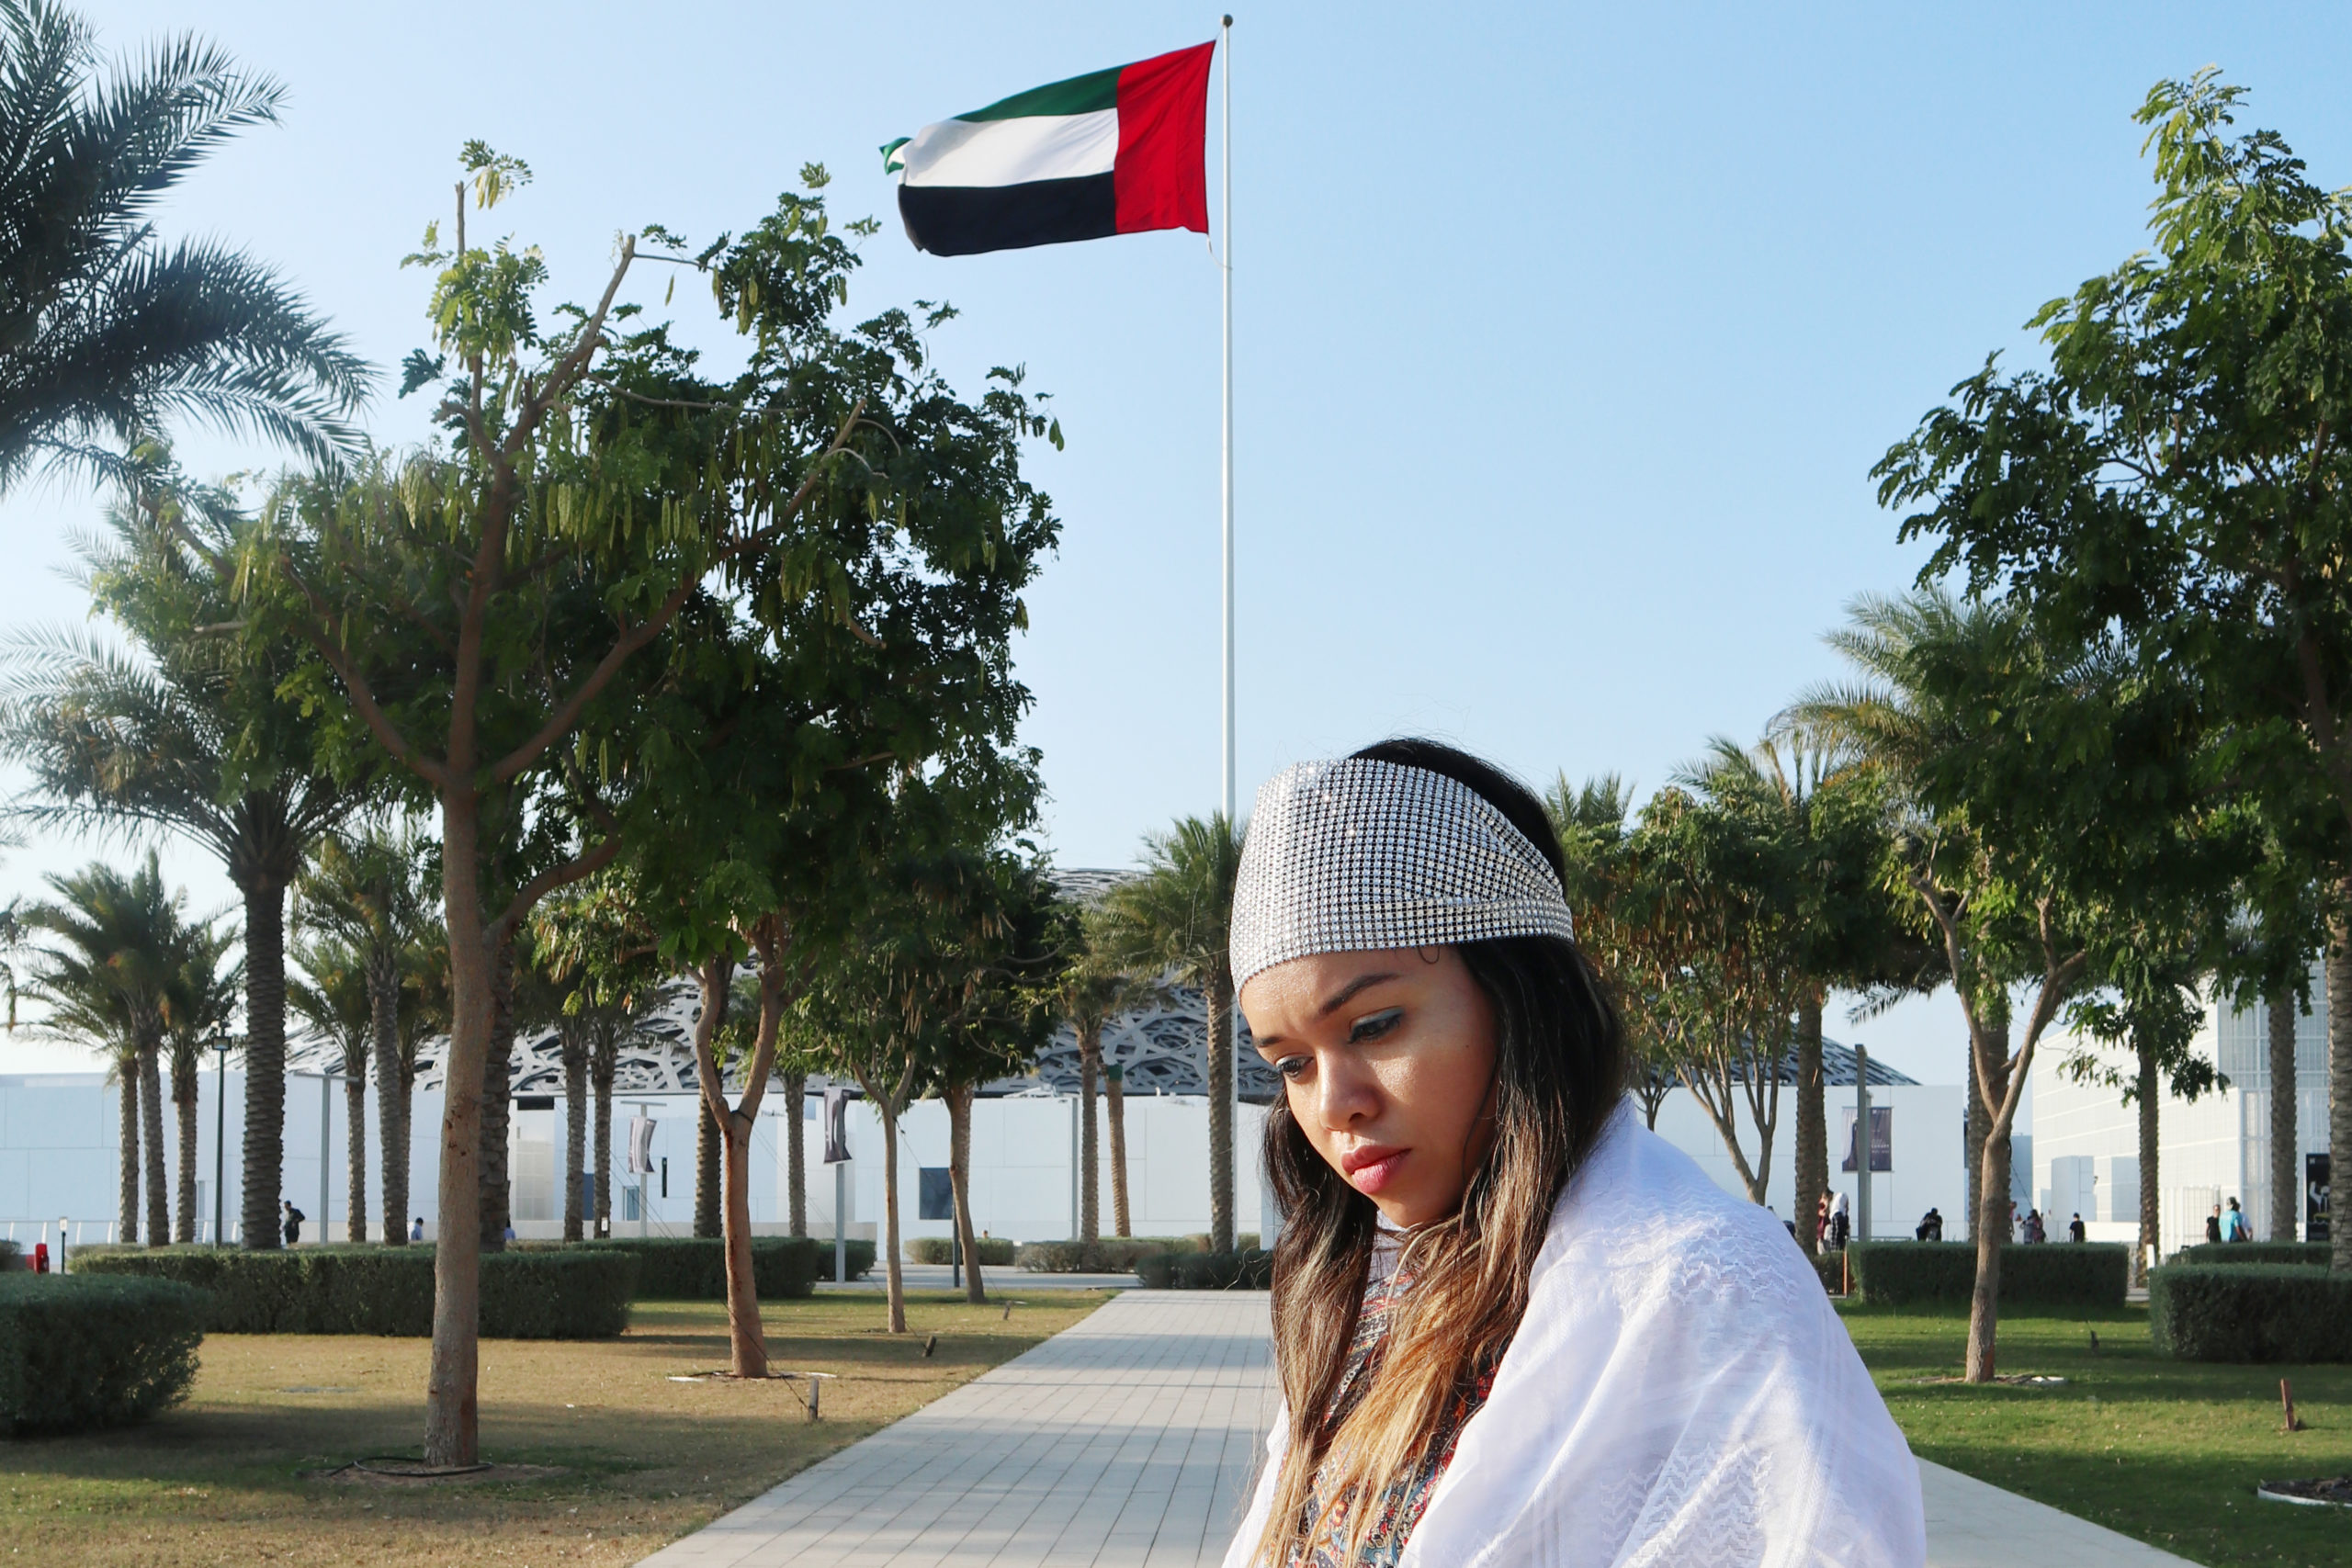 Abu Dhabi Best Places to Visit Rosi Ross